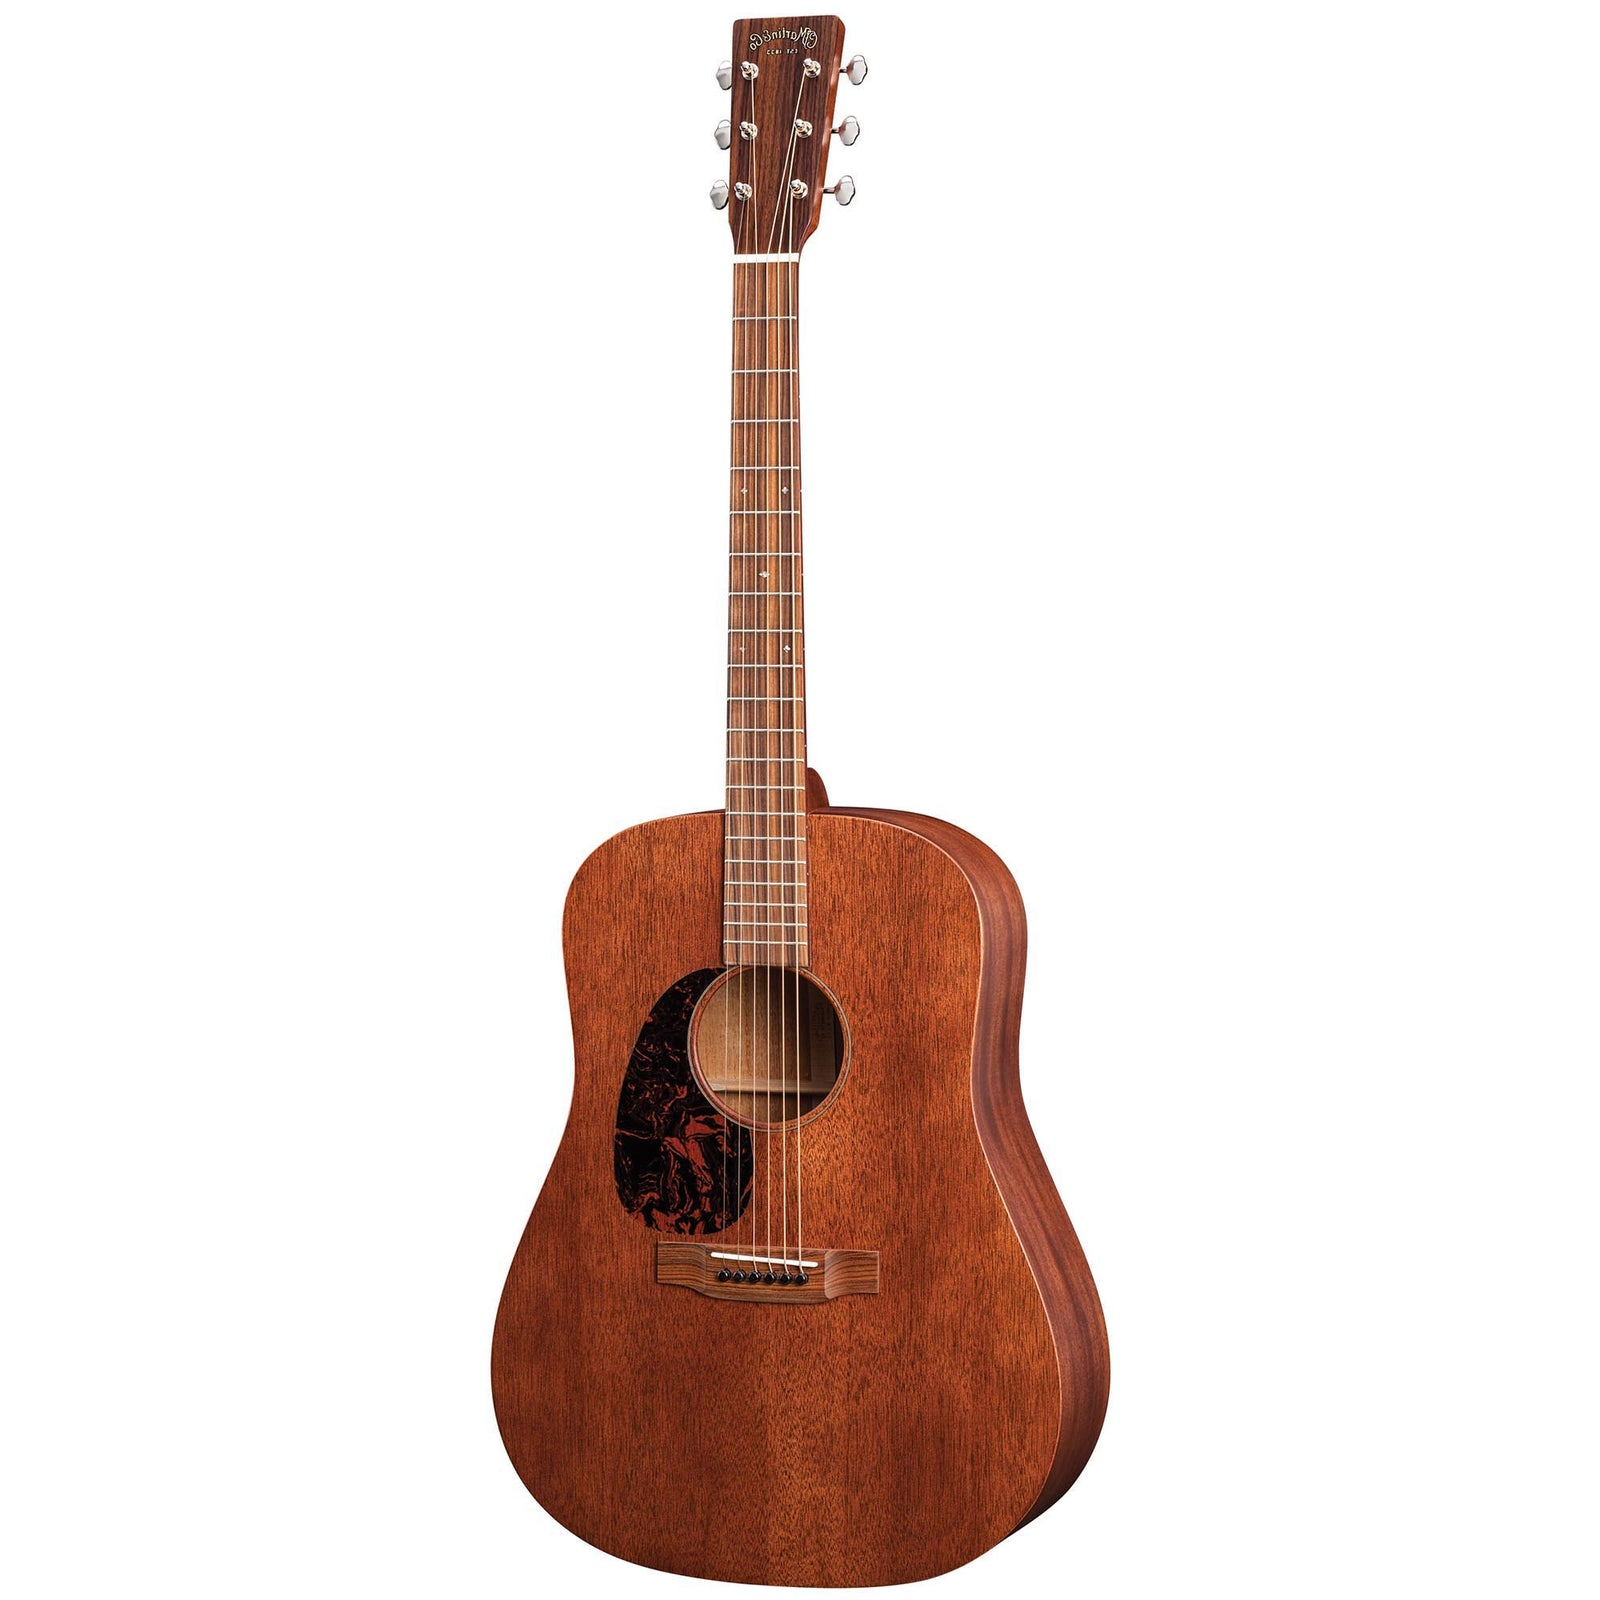 Martin D-15M Lefty Mahogany - Natural